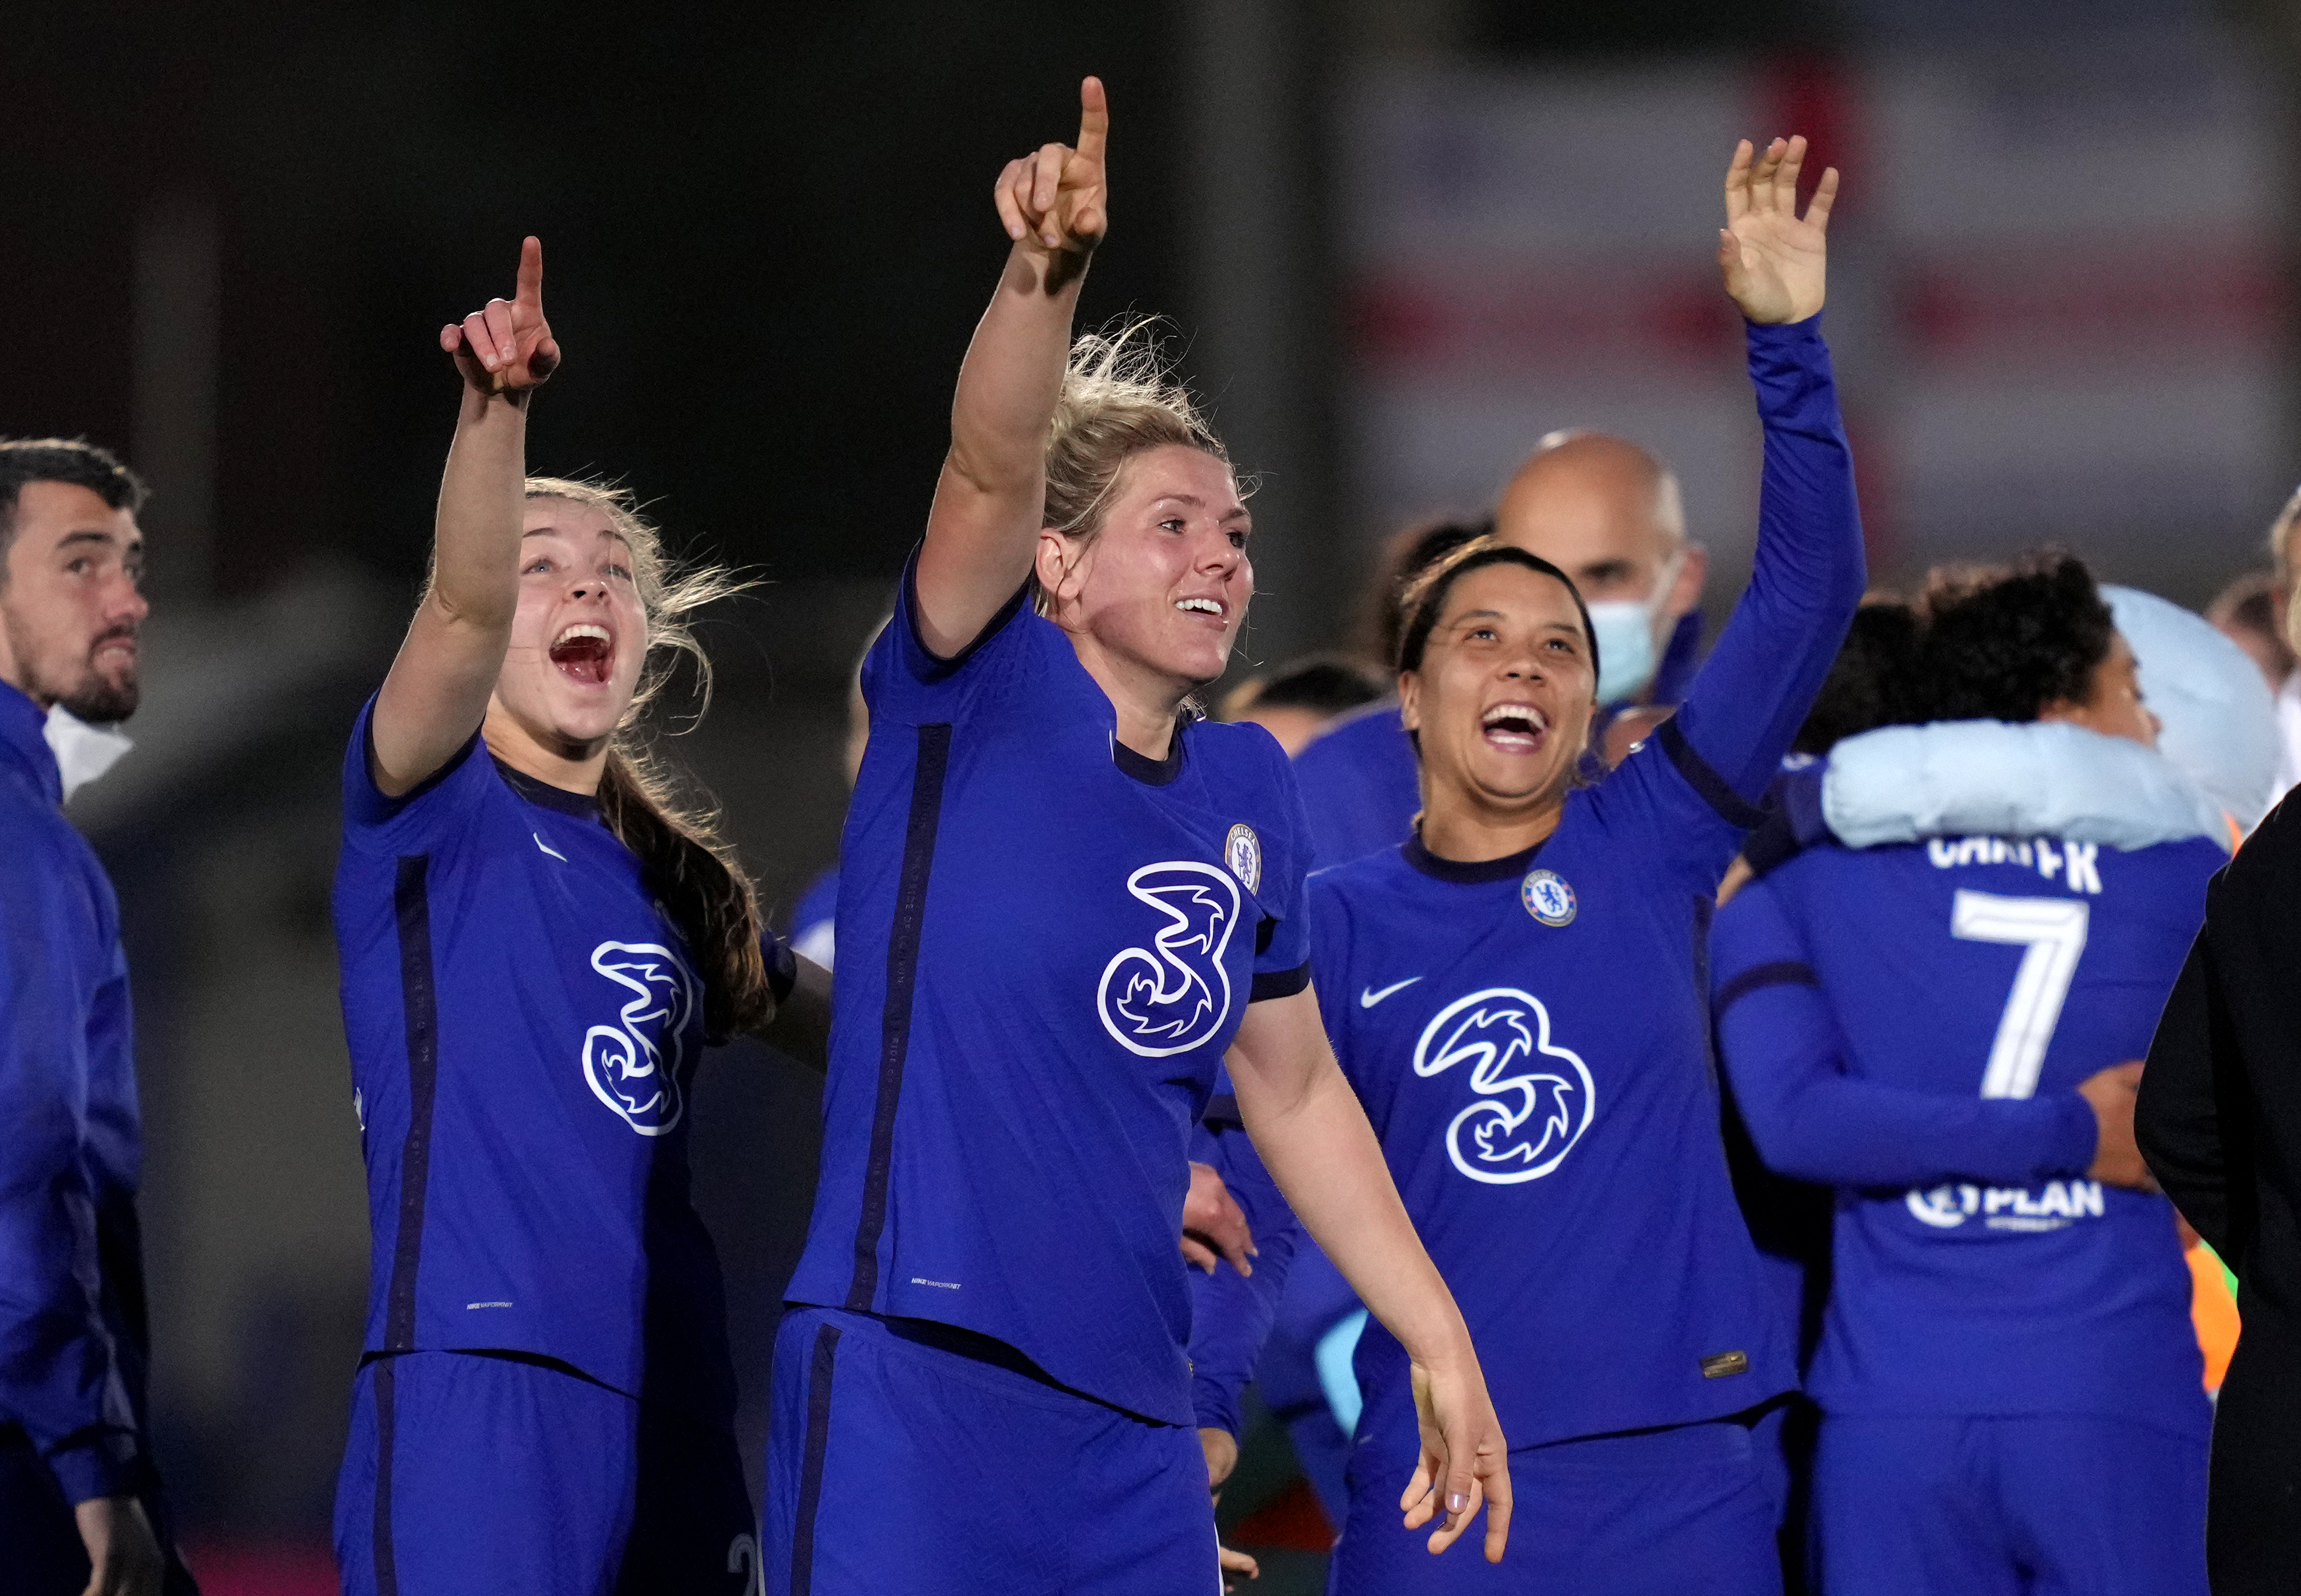 Chelsea v Everton - Vitality Women's FA Cup - Fifth Round - Kingsmeadow